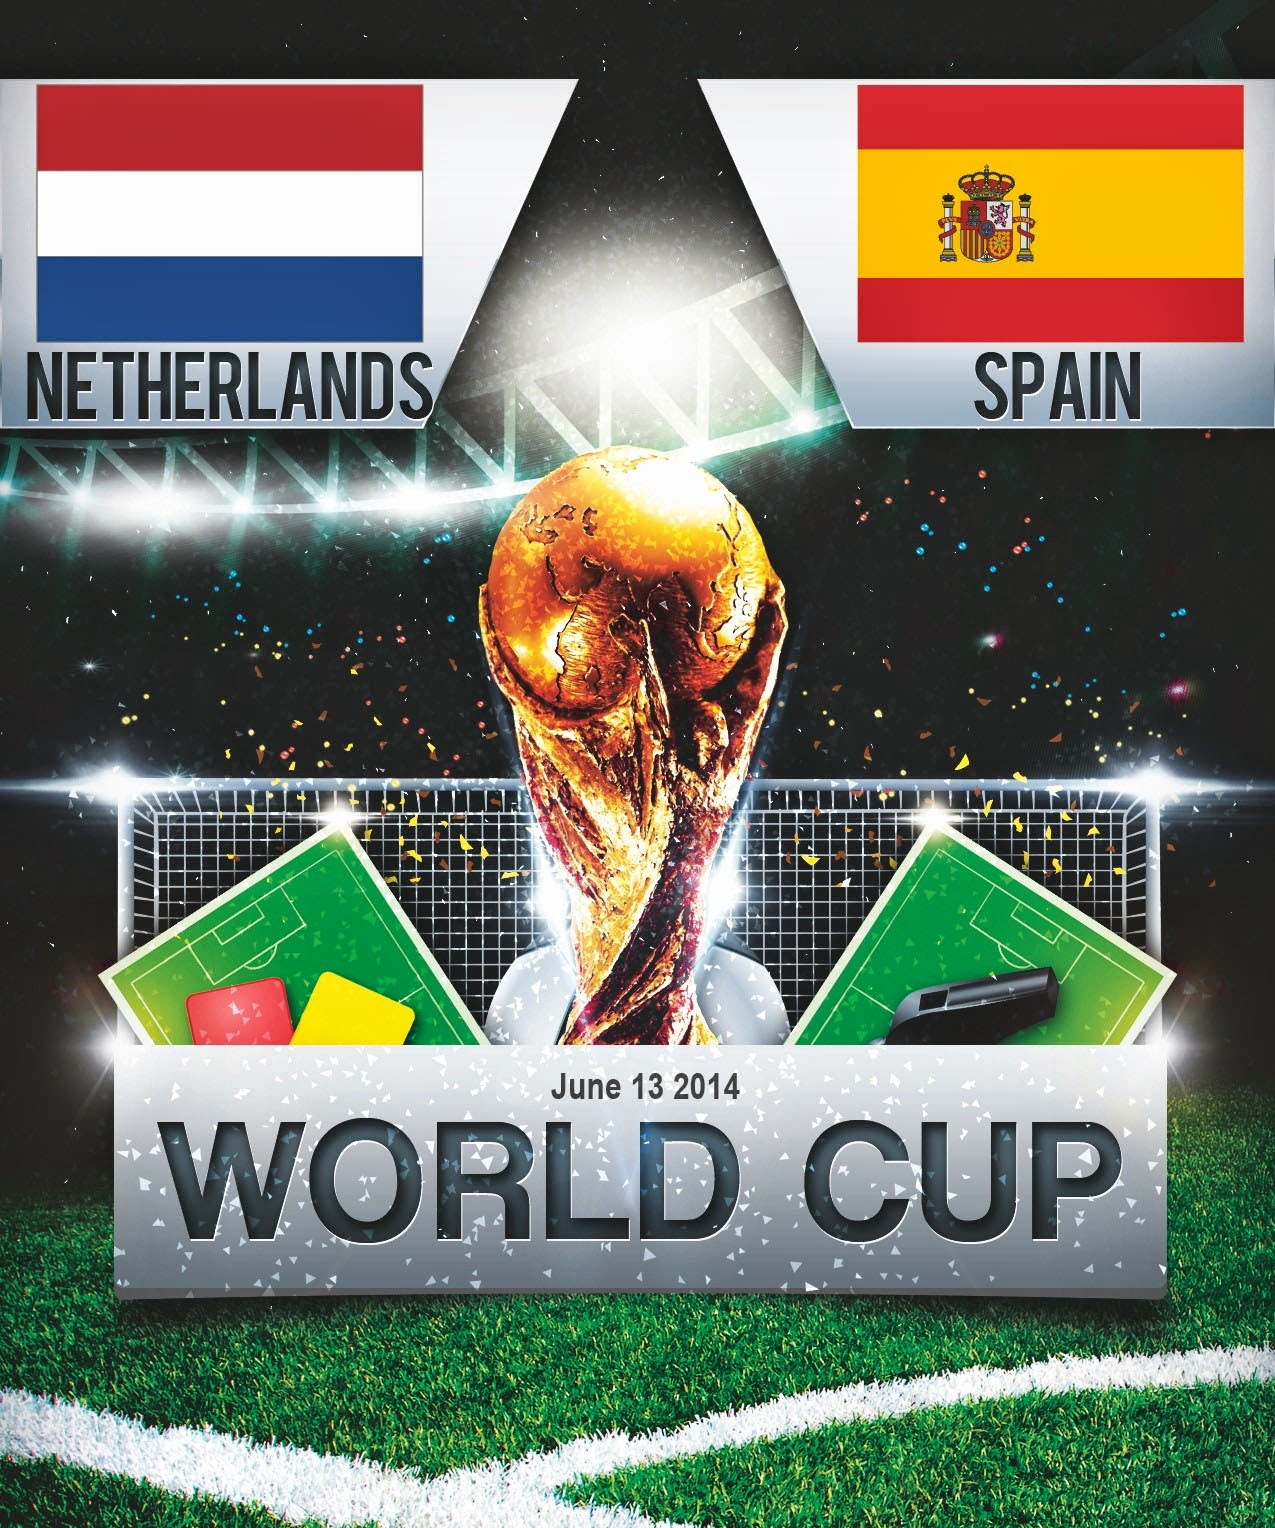 FIFA World Cup 2014 - Netherlands Vs Spain